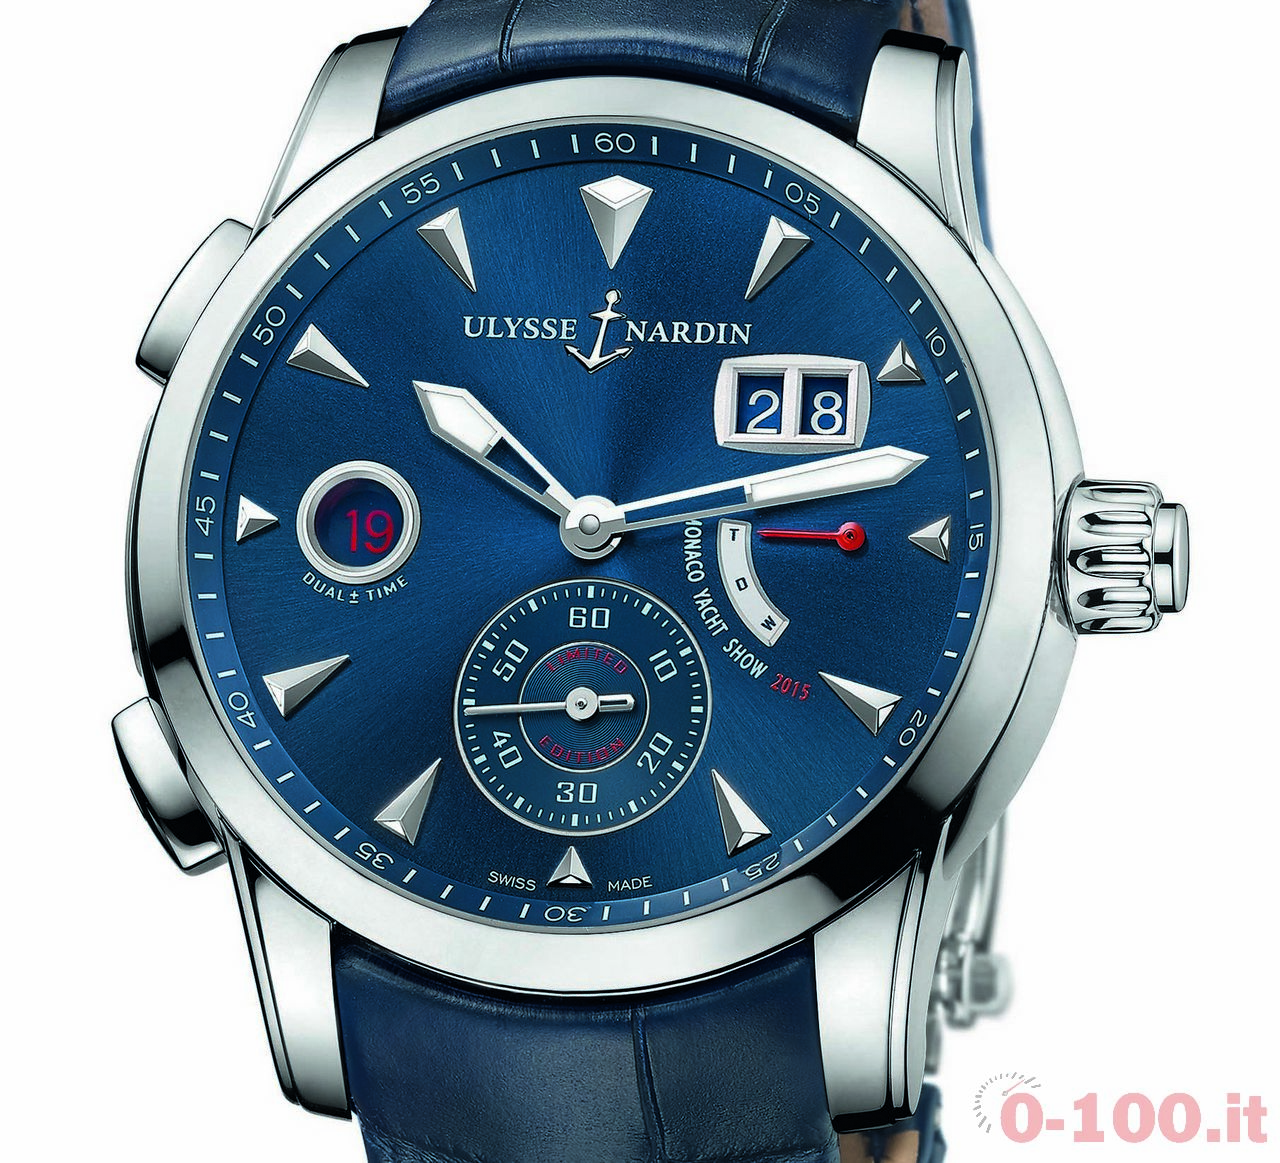 ulysse-nardin-dual-time-manufacture-monaco-limited-edition-ref-3243-132le93-mon_0-1002